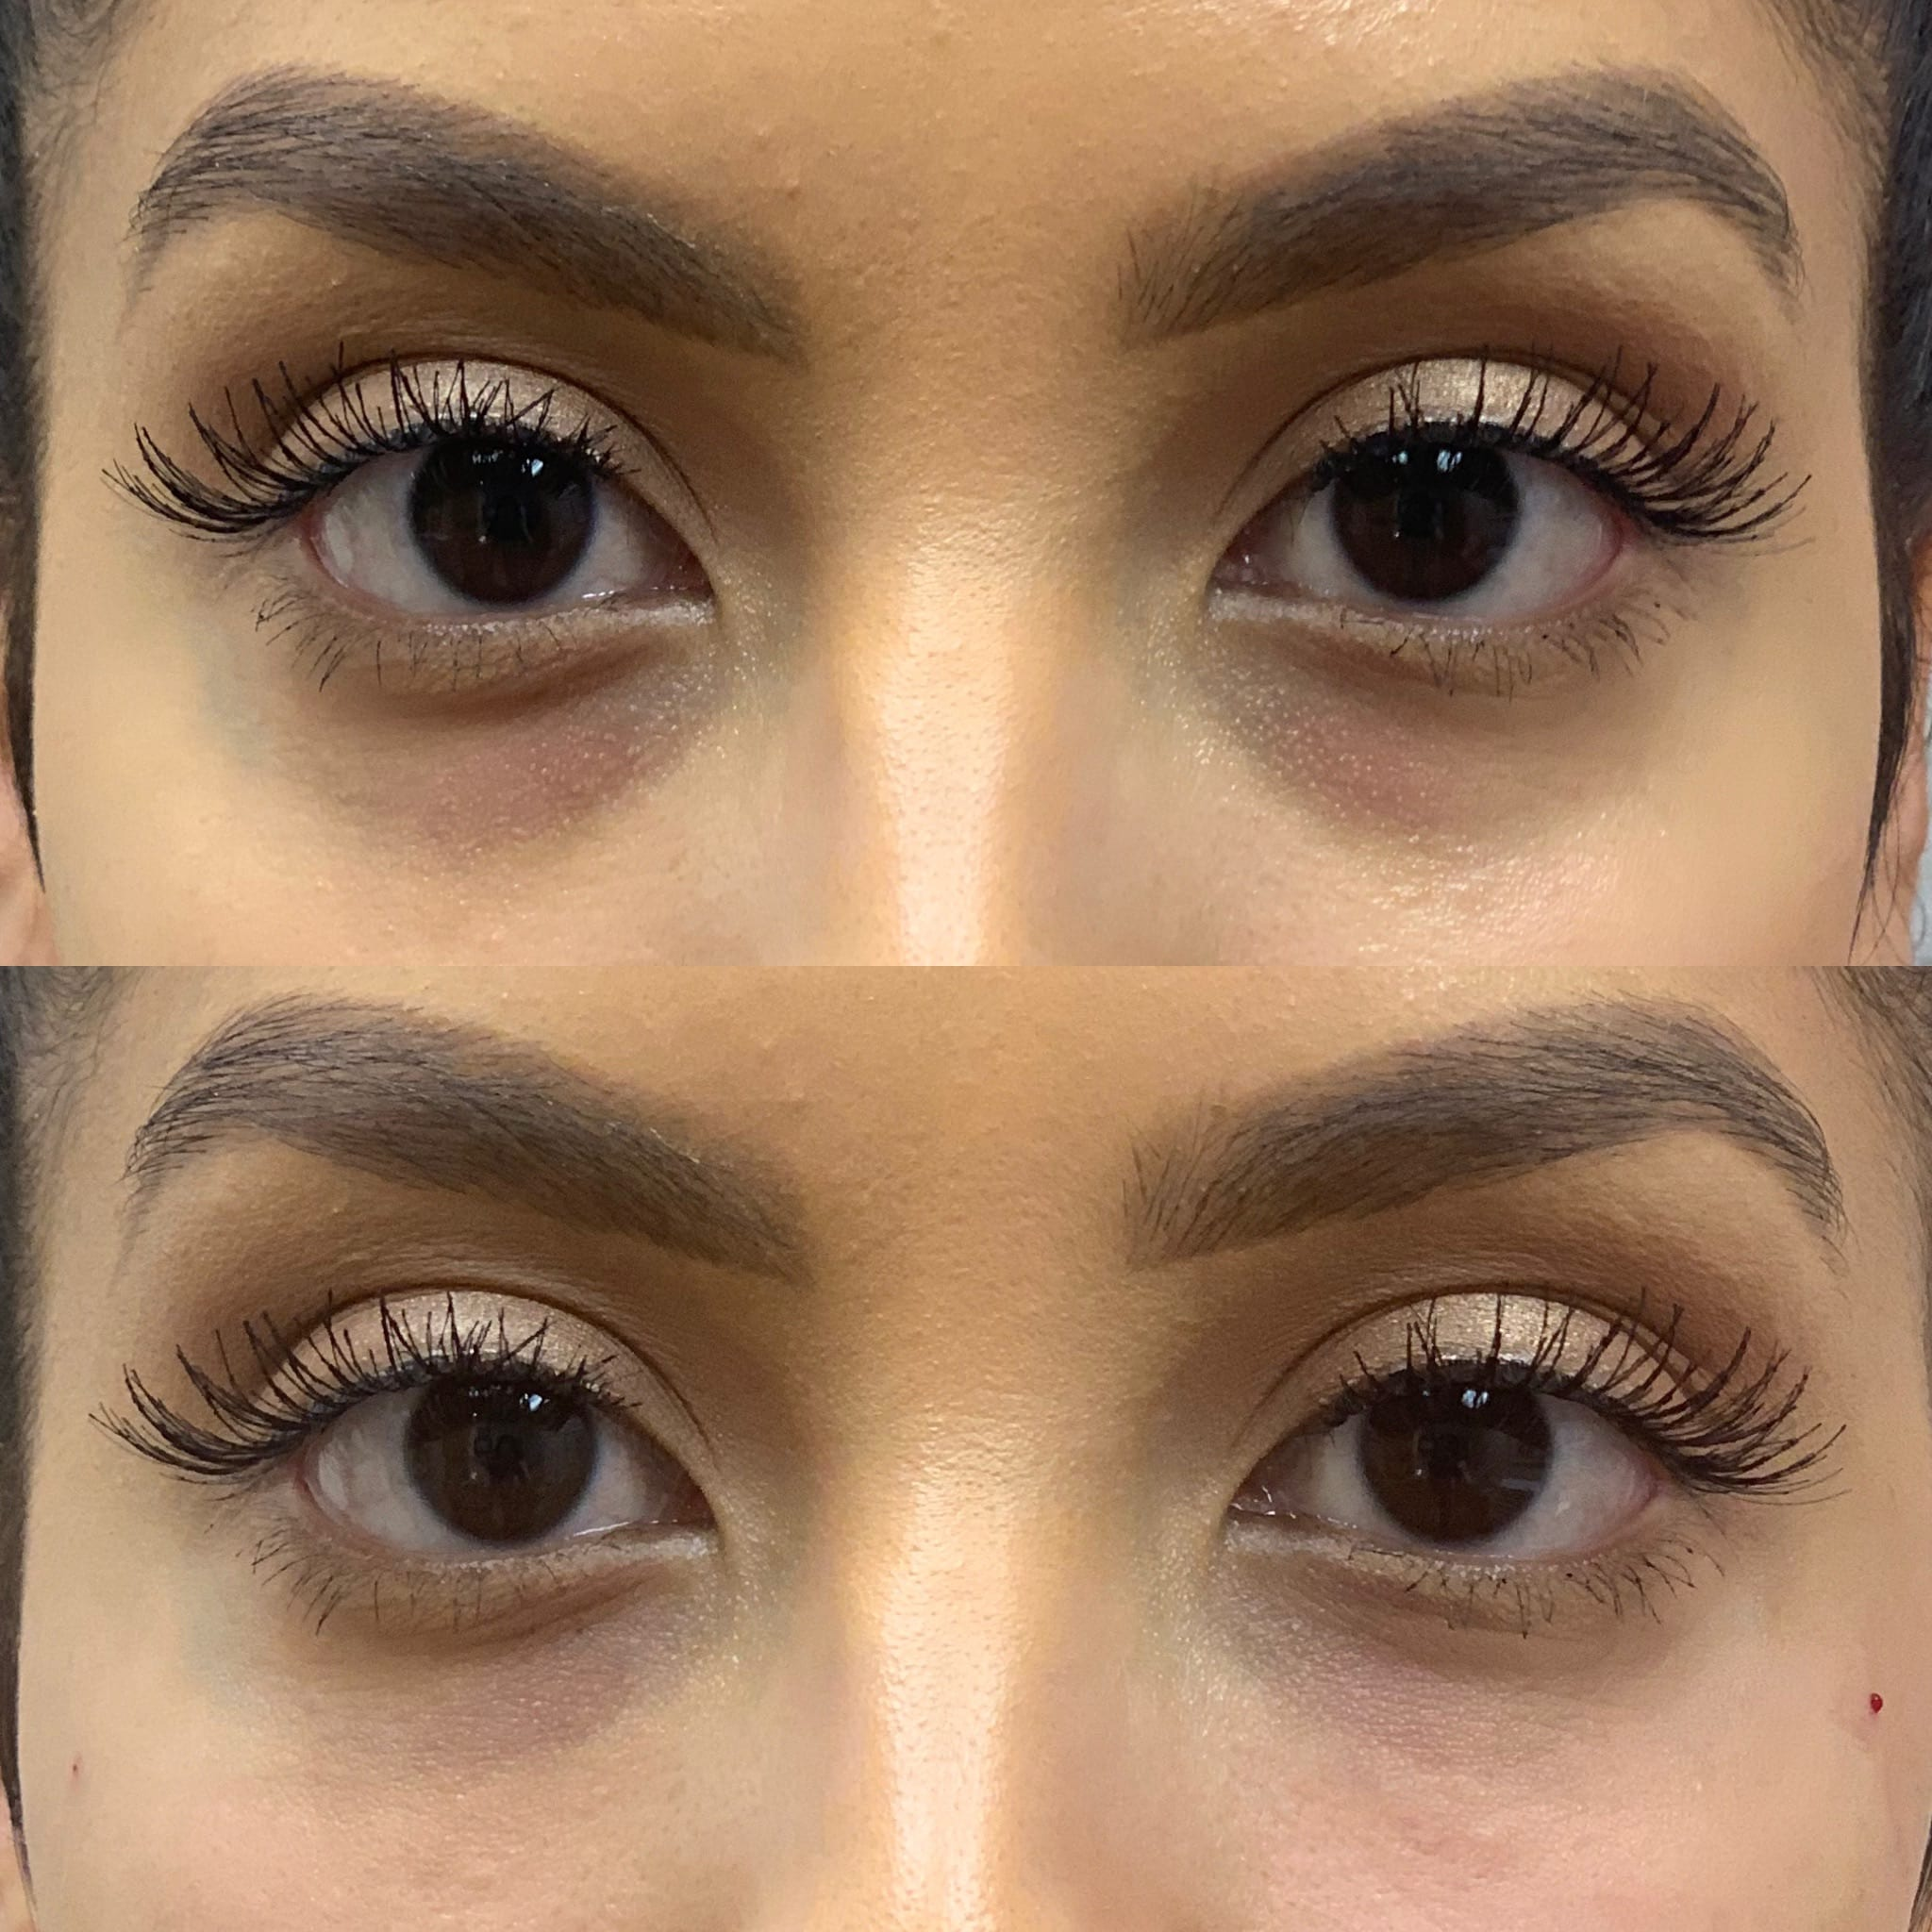 25 y/o Hispanic F immediately after injecting Restylane-L to her under eye area.